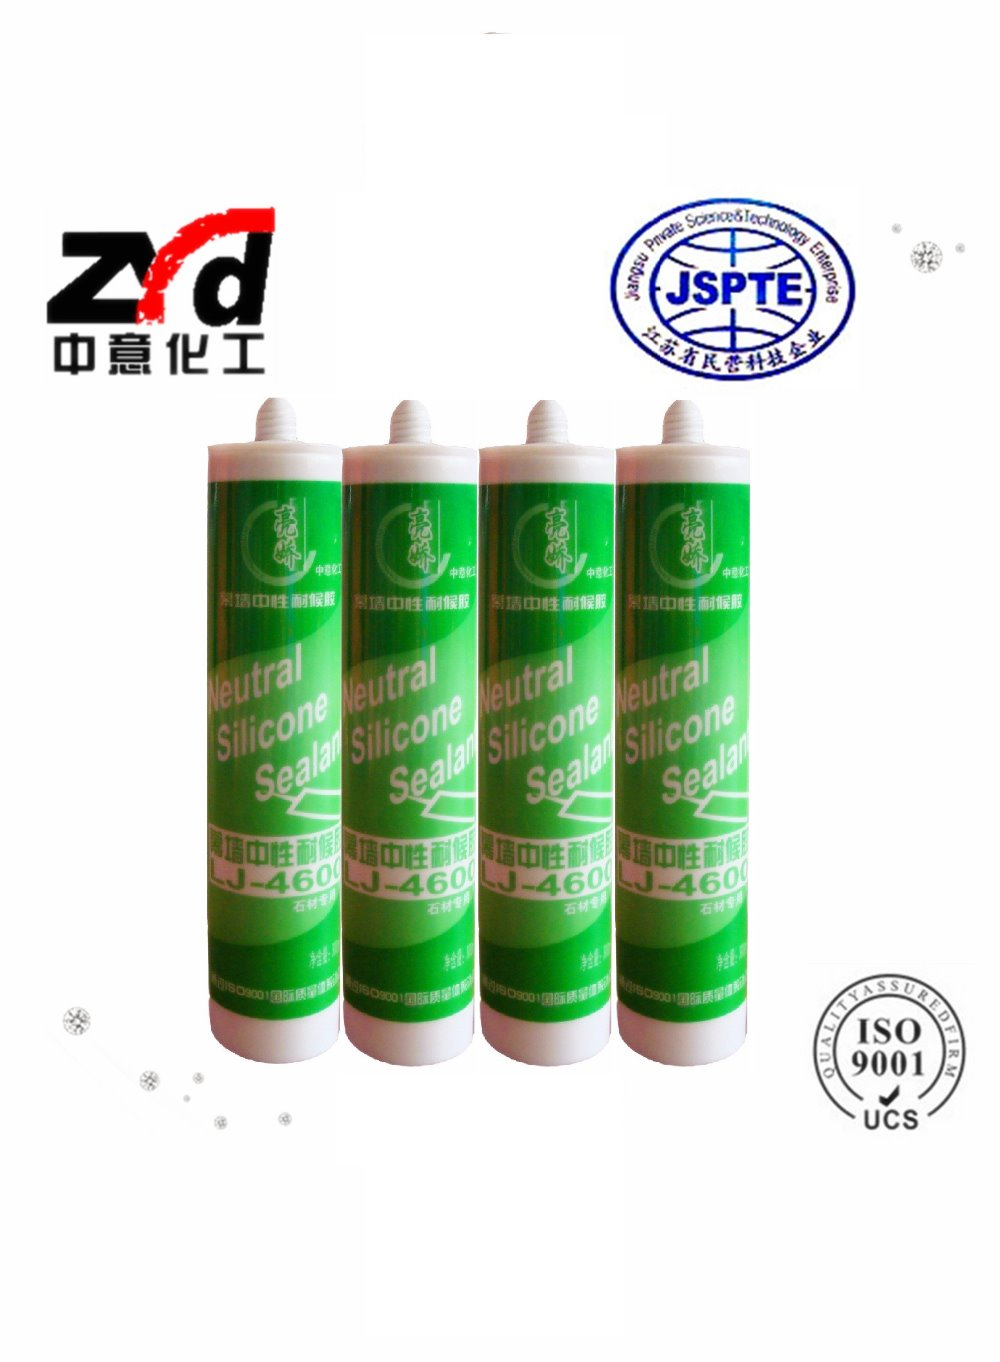 LJ-4600 neutral Silicone Stone Sealant room curing, high modulus,excellent adhesion